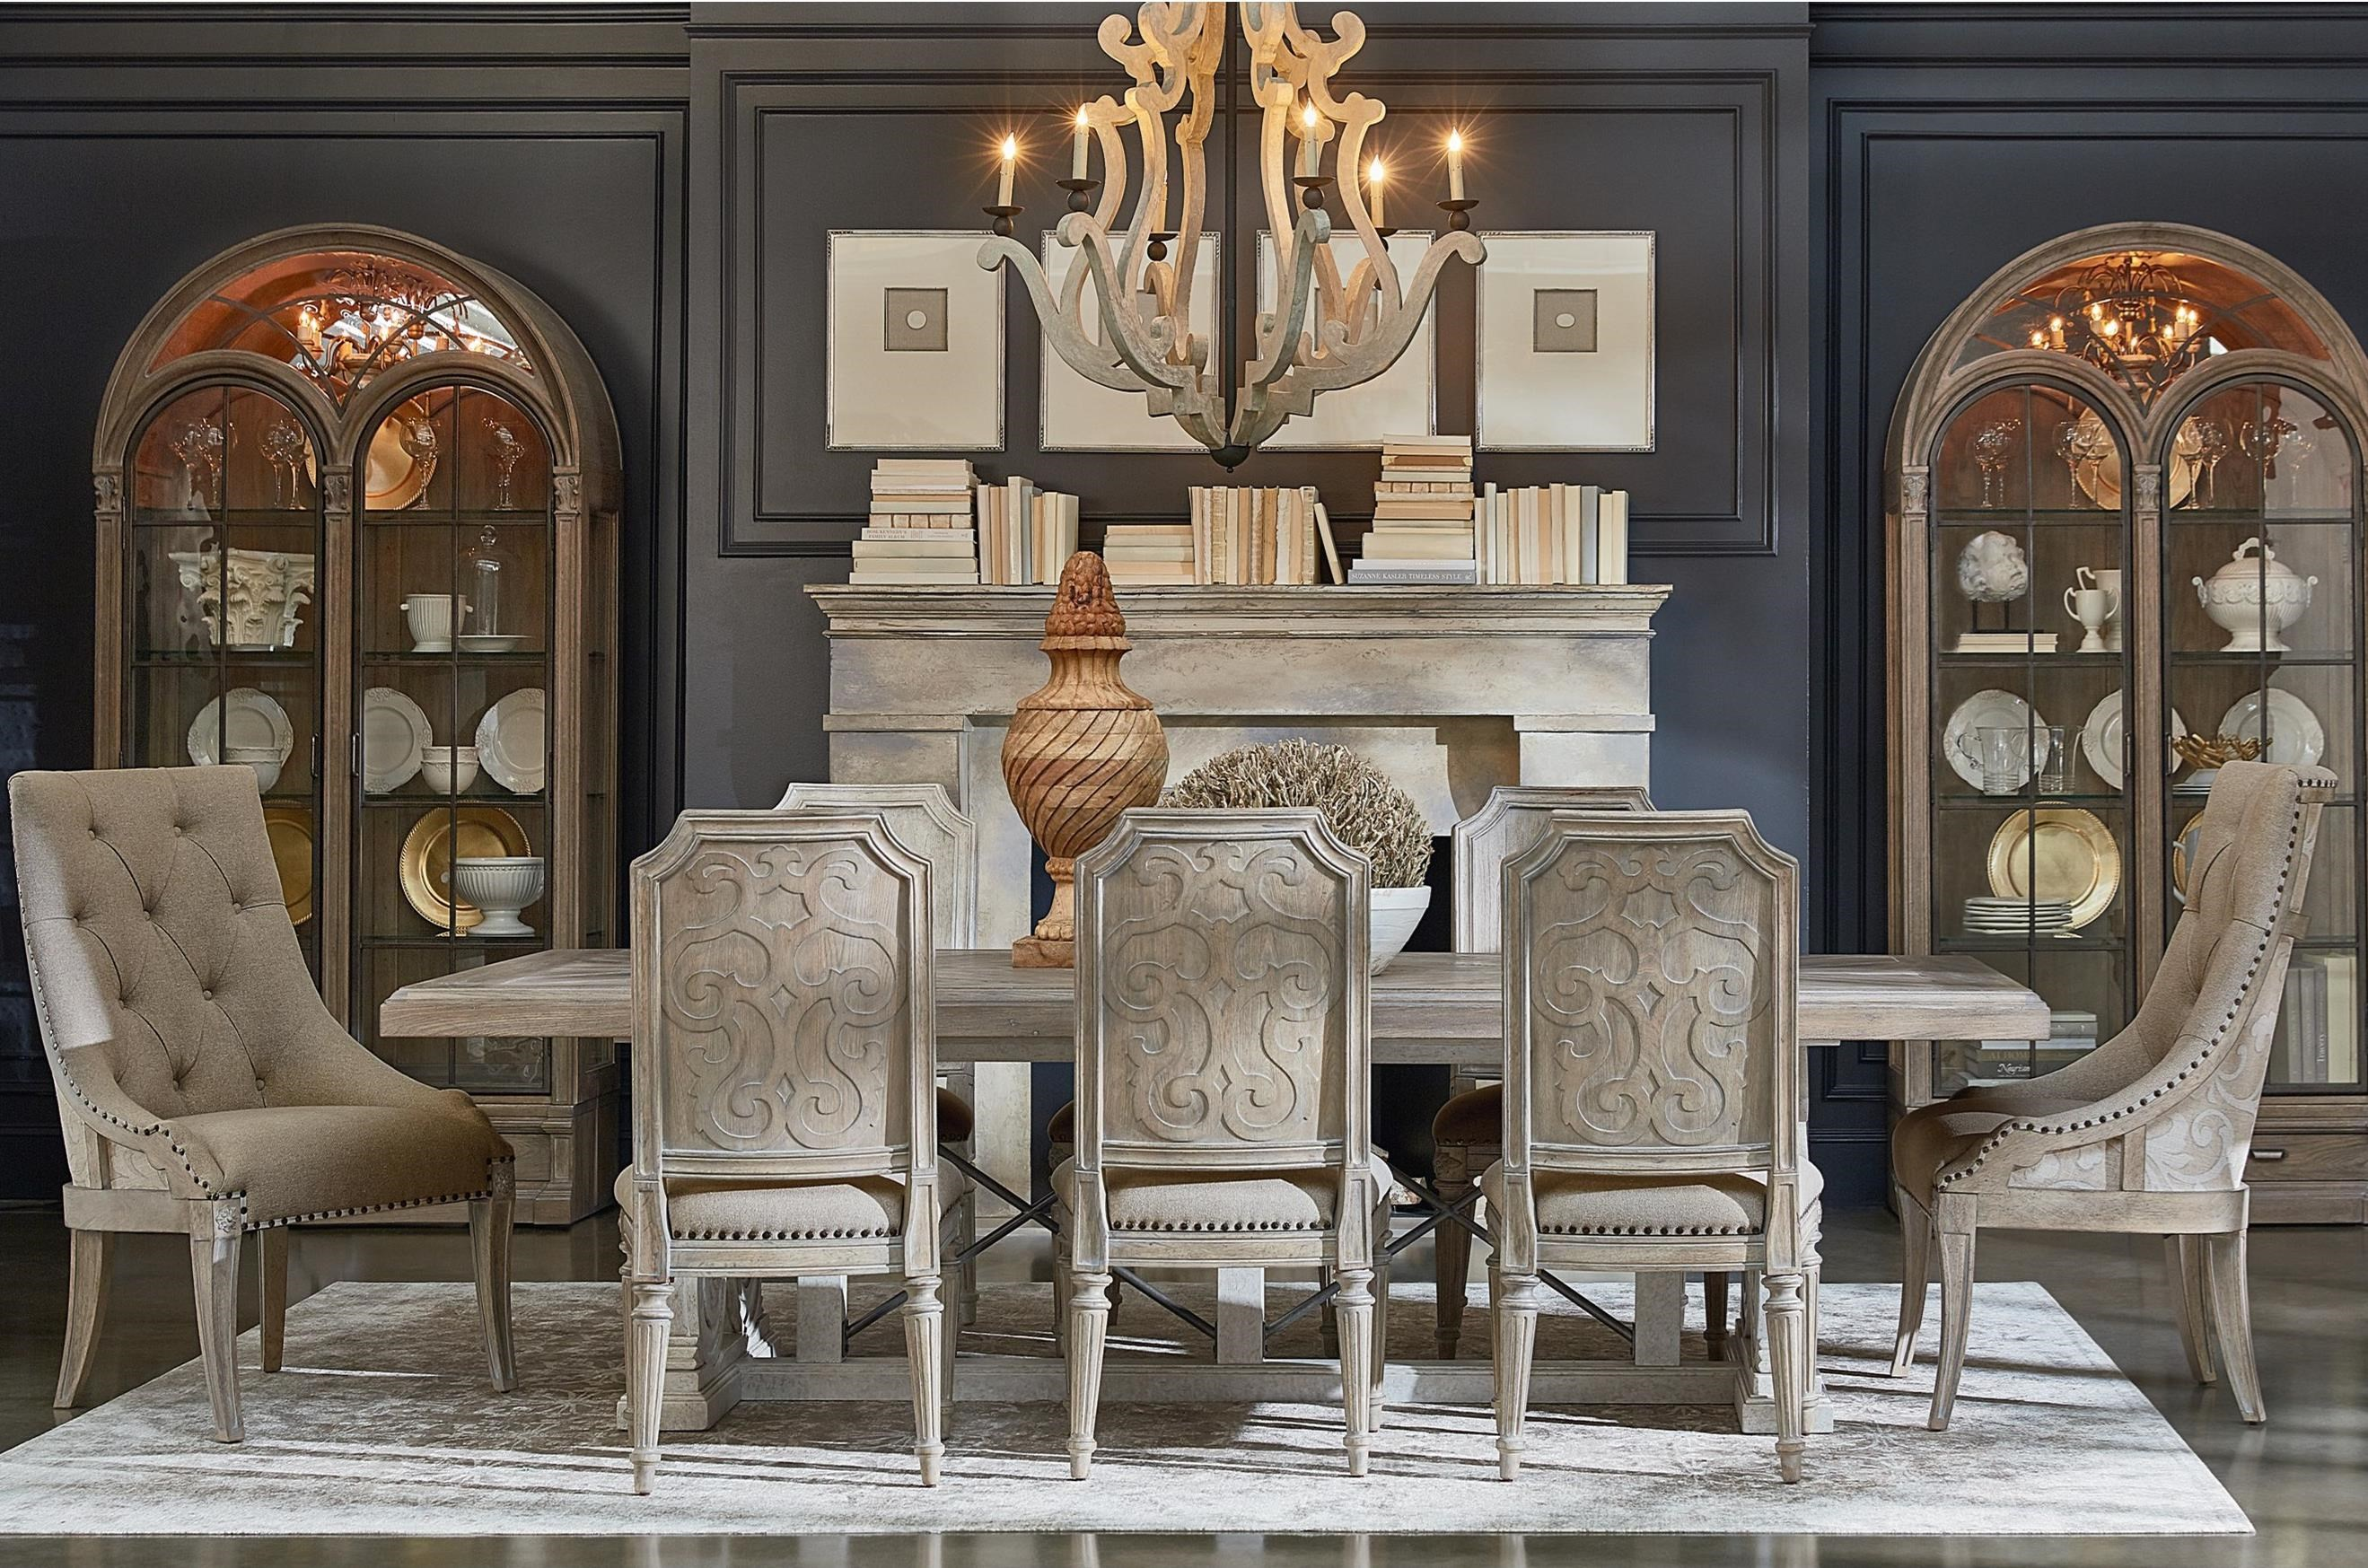 Arch Salvage 9-Piece Pearce Dining Table Set by A.R.T. Furniture Inc at Baer's Furniture